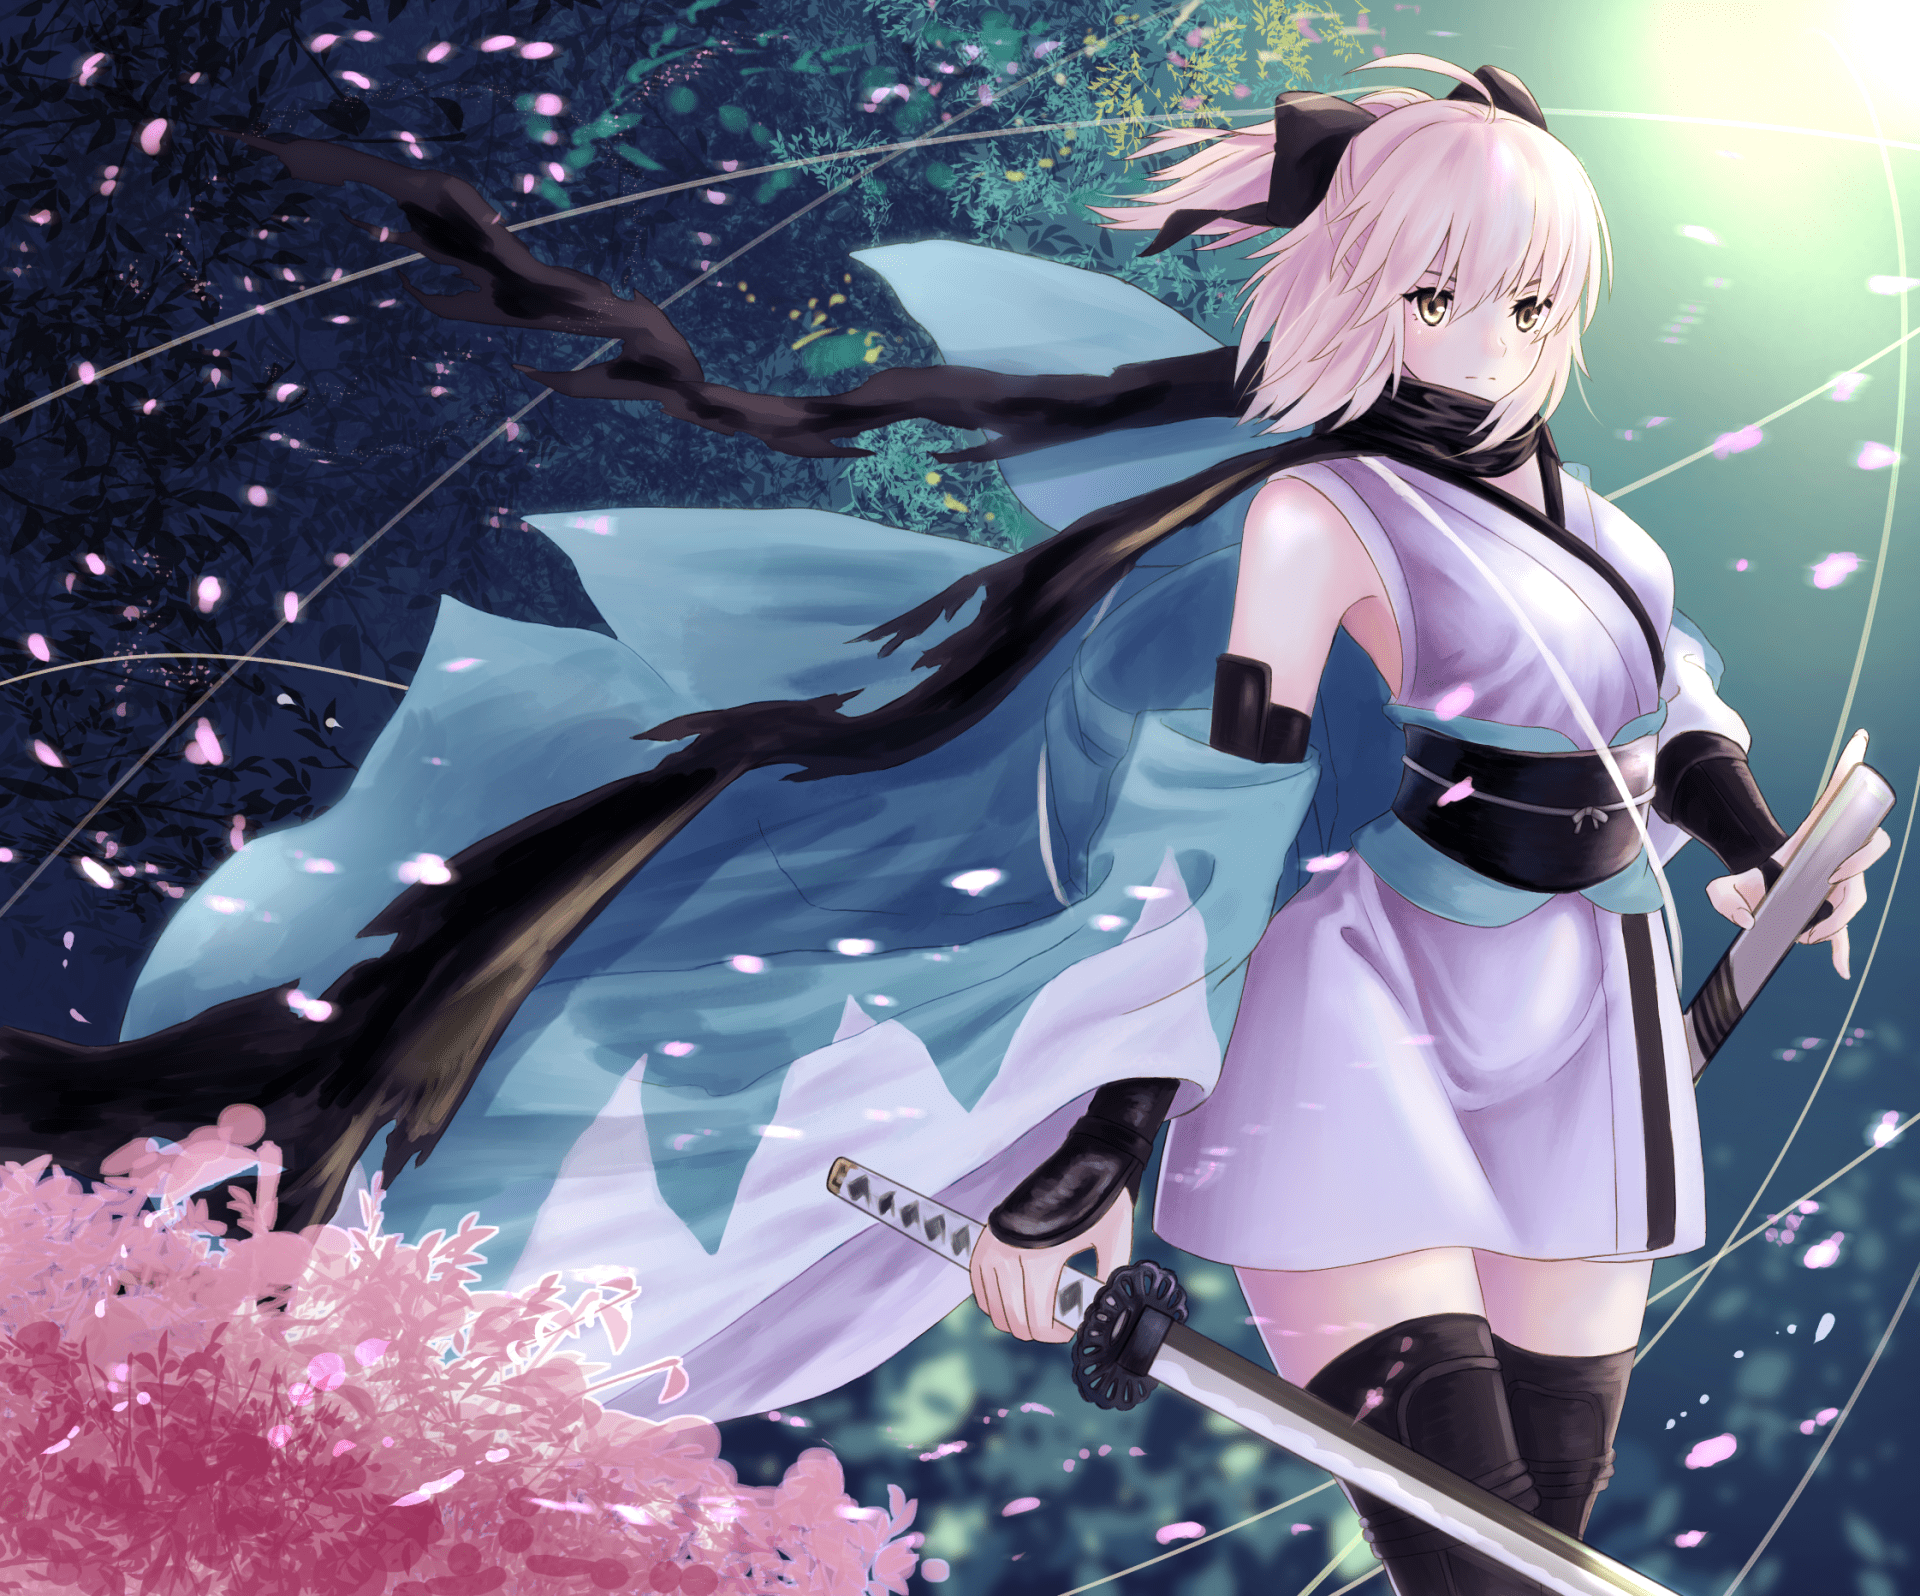 Fate/Grand Order HD Wallpaper | Background Image | 2243x1864 | ID:814323 - Wallpaper Abyss